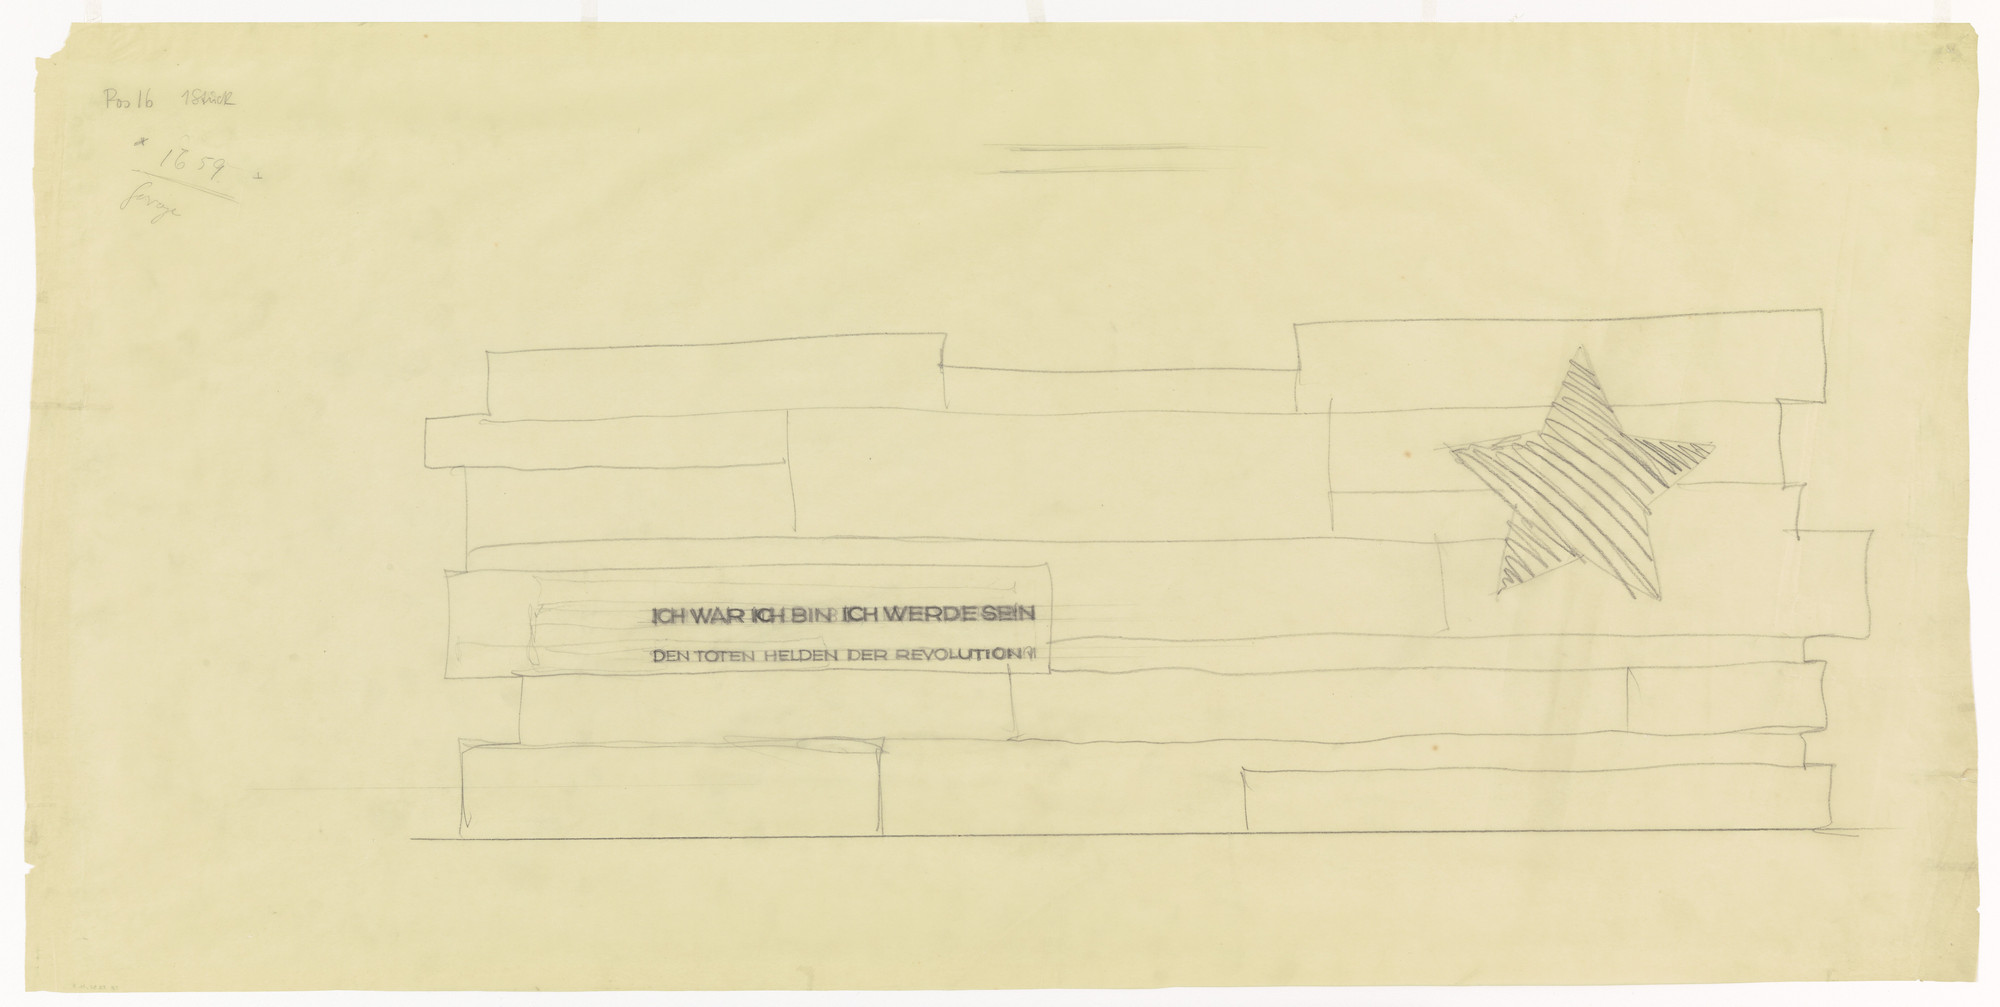 Ludwig Mies van der Rohe. Monument to the November Revolution, Berlin-Lichtenberg, Germany, Lettering study. 1926